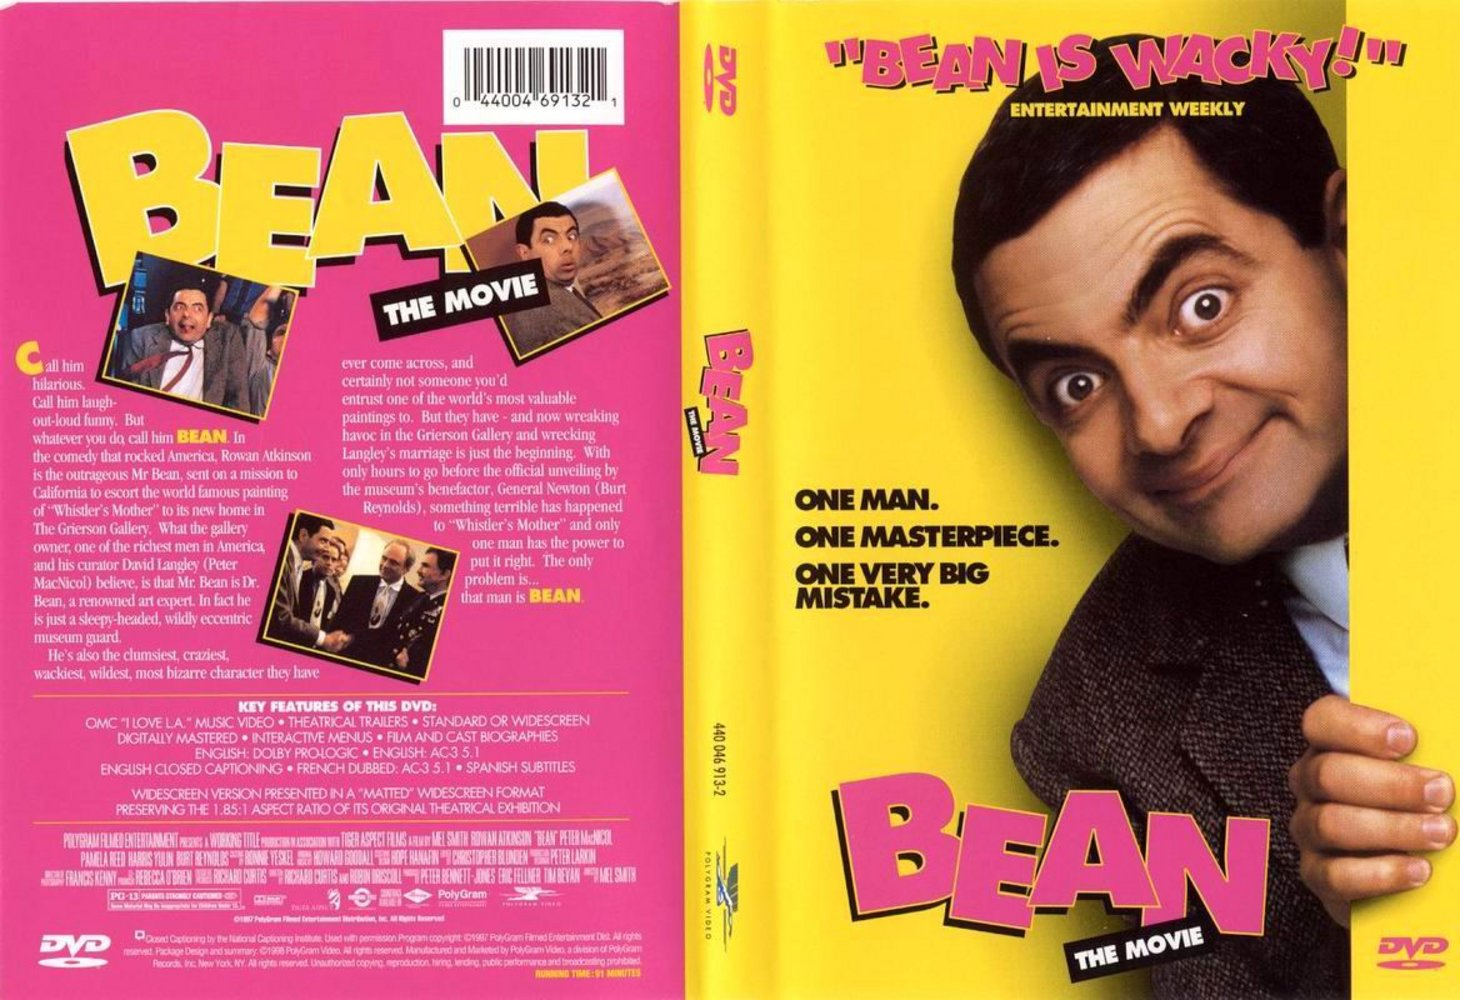 http://1.bp.blogspot.com/-sS9ebcDz_w8/Tv7JClvL-DI/AAAAAAAAB9Q/8pm-G3HPWJQ/s1600/Bean_The_Movie-%255Bcdcovers_cc%255D-front.jpg